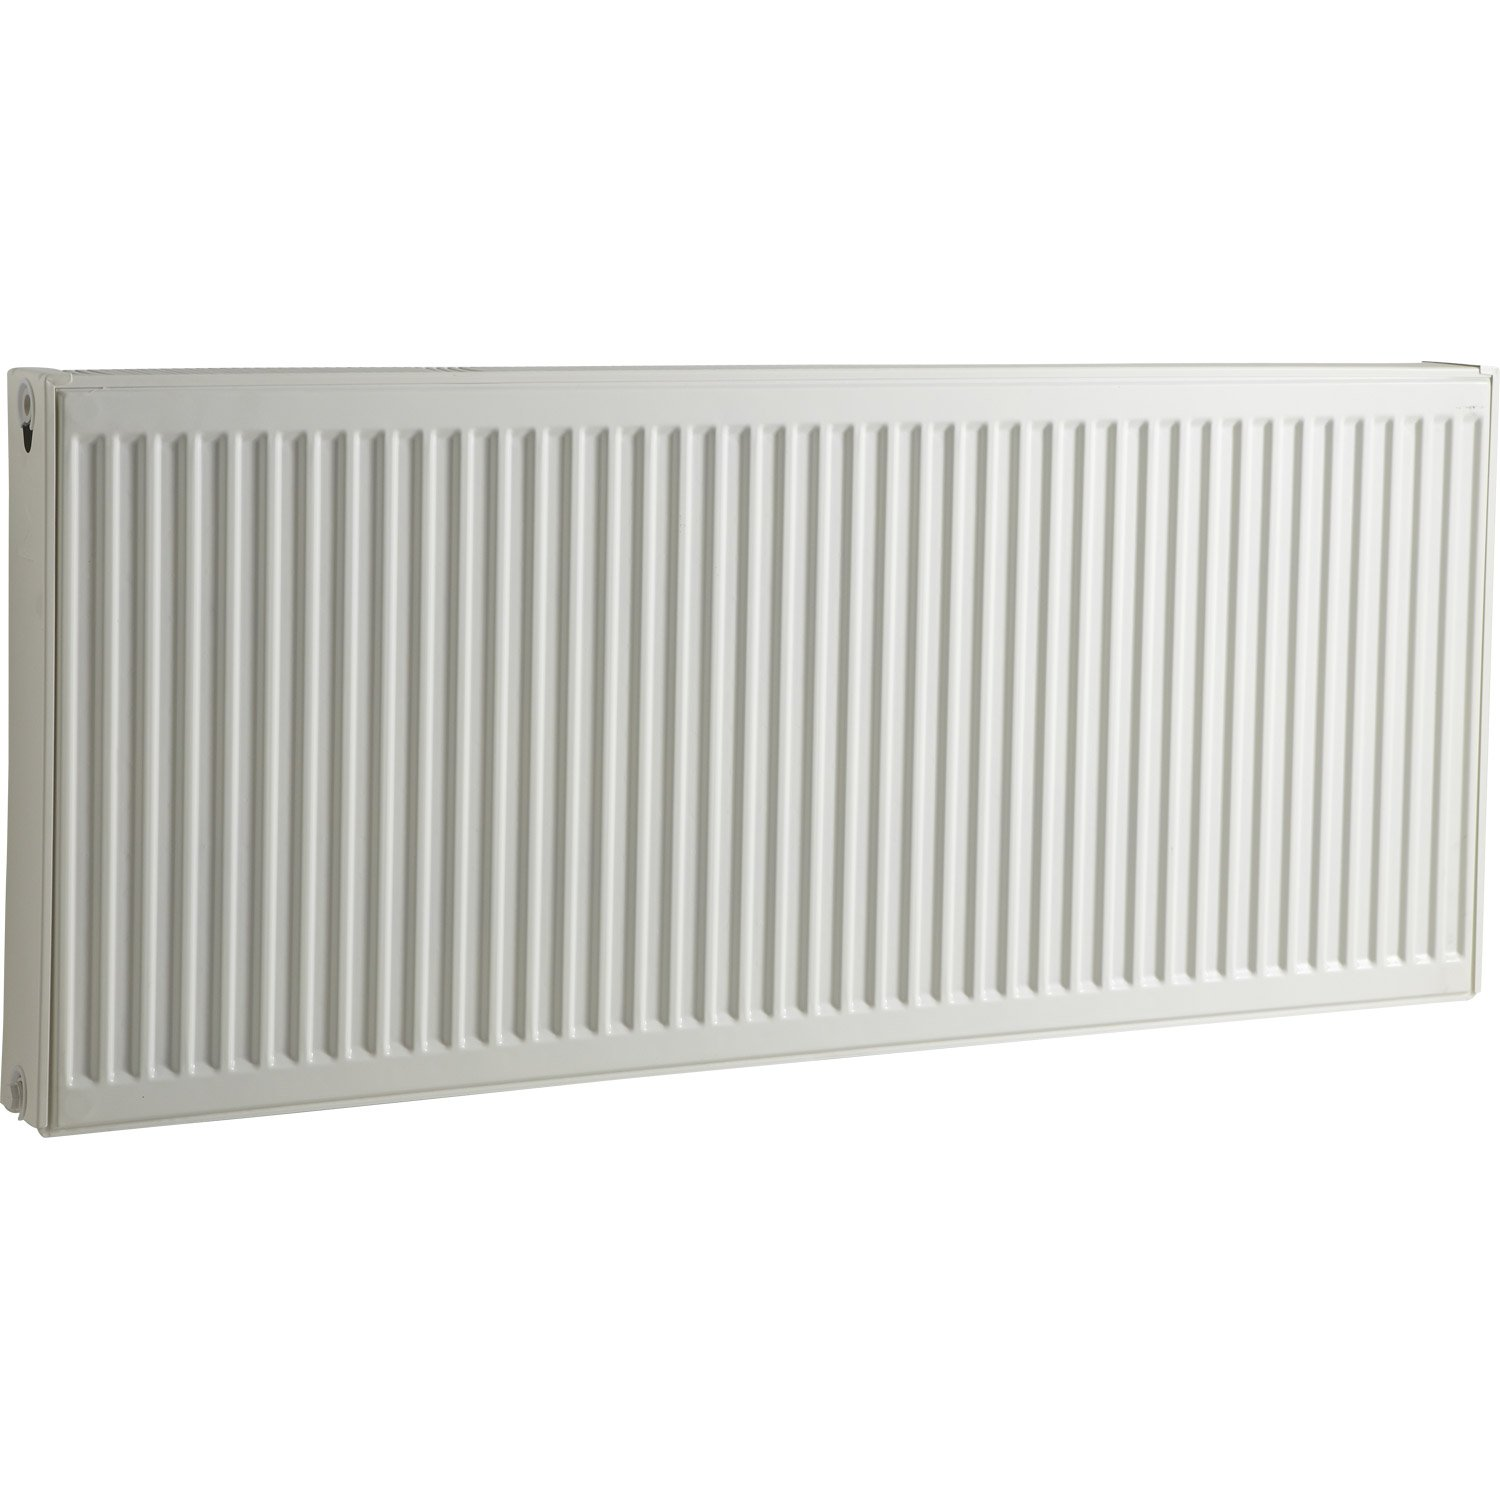 radiateur chauffage central blanc cm 1712 w leroy merlin. Black Bedroom Furniture Sets. Home Design Ideas